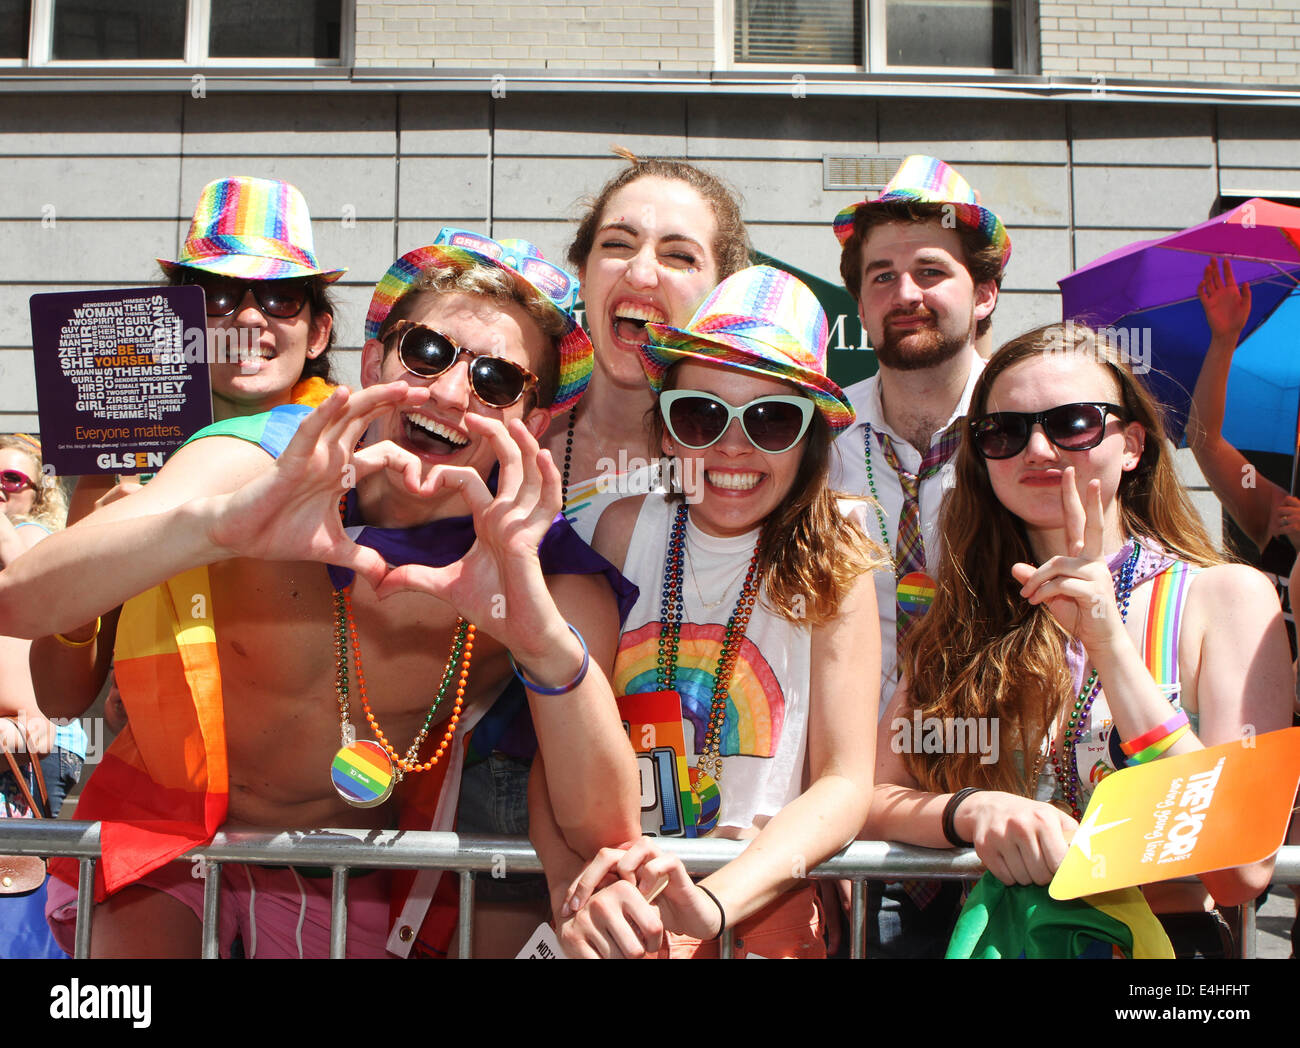 Spectators display support at 45th annual New York City Gay Pride Parade on Fifth Avenue in New York City. - Stock Image